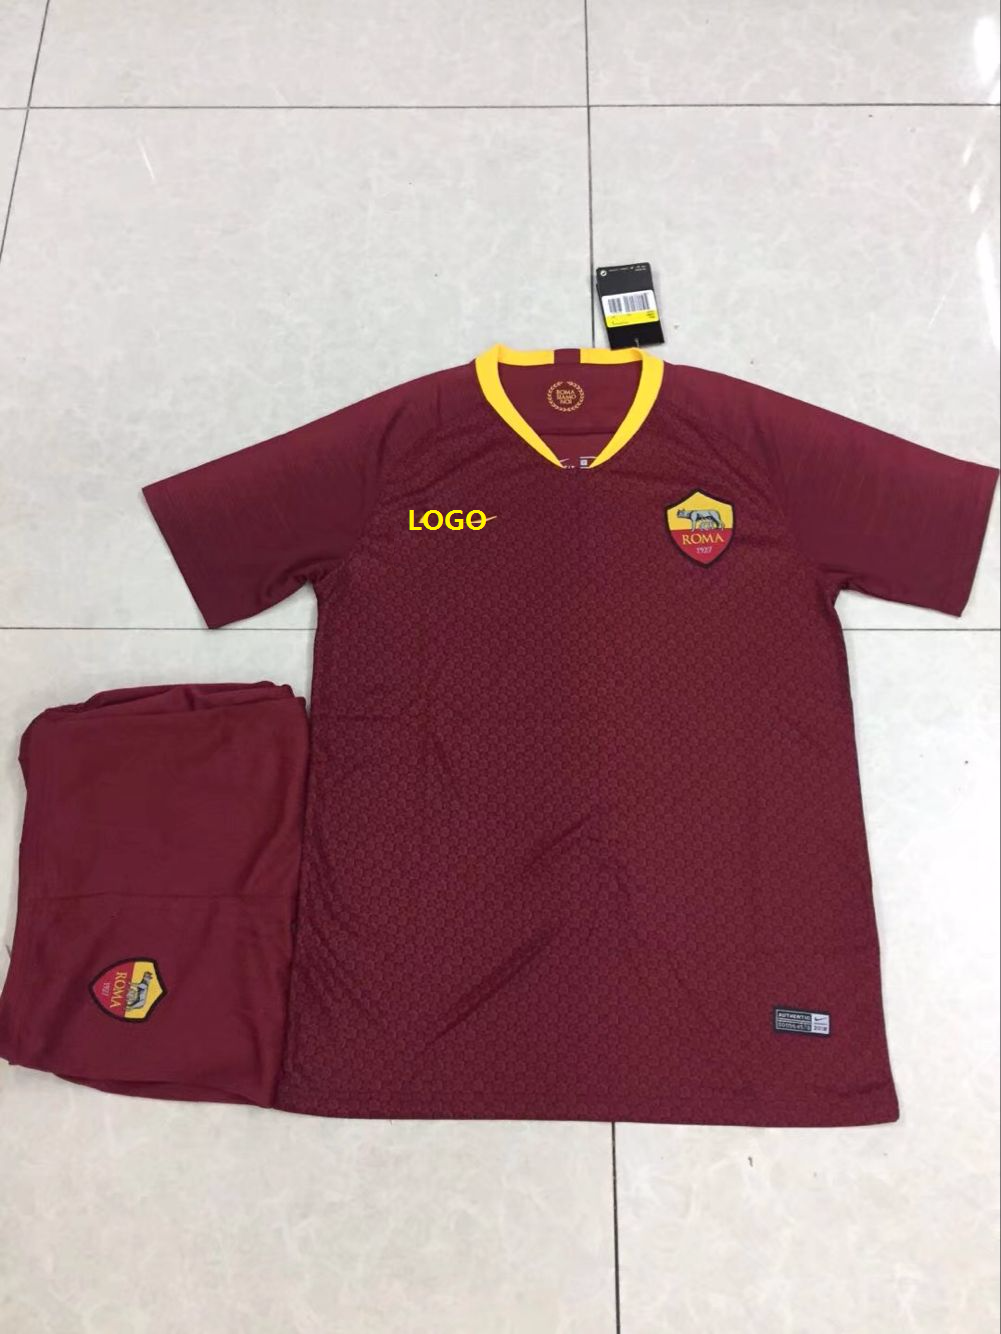 9a2830ed4c0 2018/19 AAA Men Roma Home Red Soccer Uniform Adult Football Kits DIY Soccer  Jersey